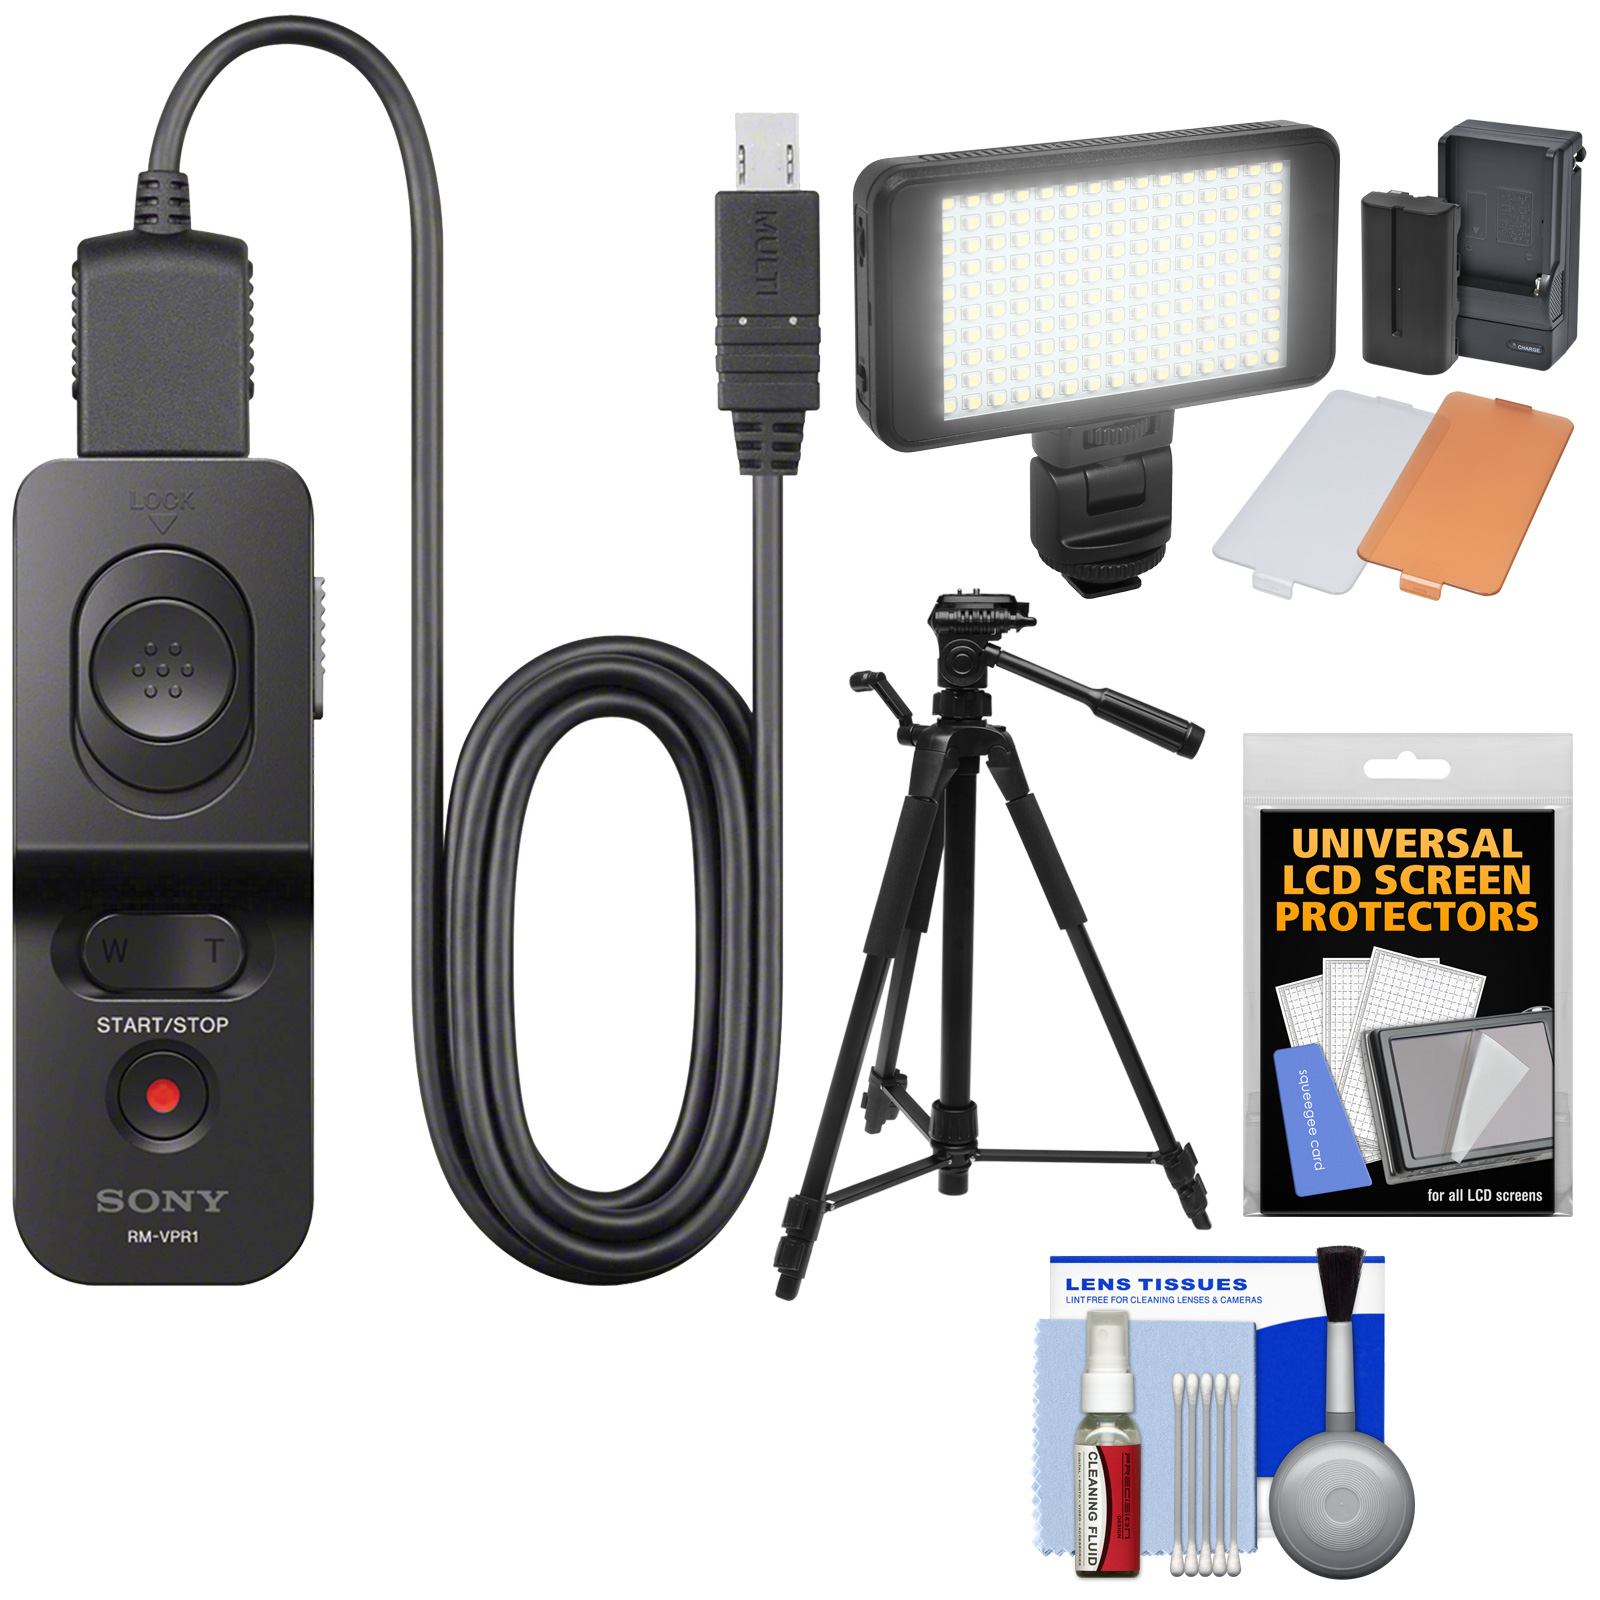 Sony RM-VPR1 Remote Control with Multi-terminal Cable with LED Video Light   Tripod   Kit